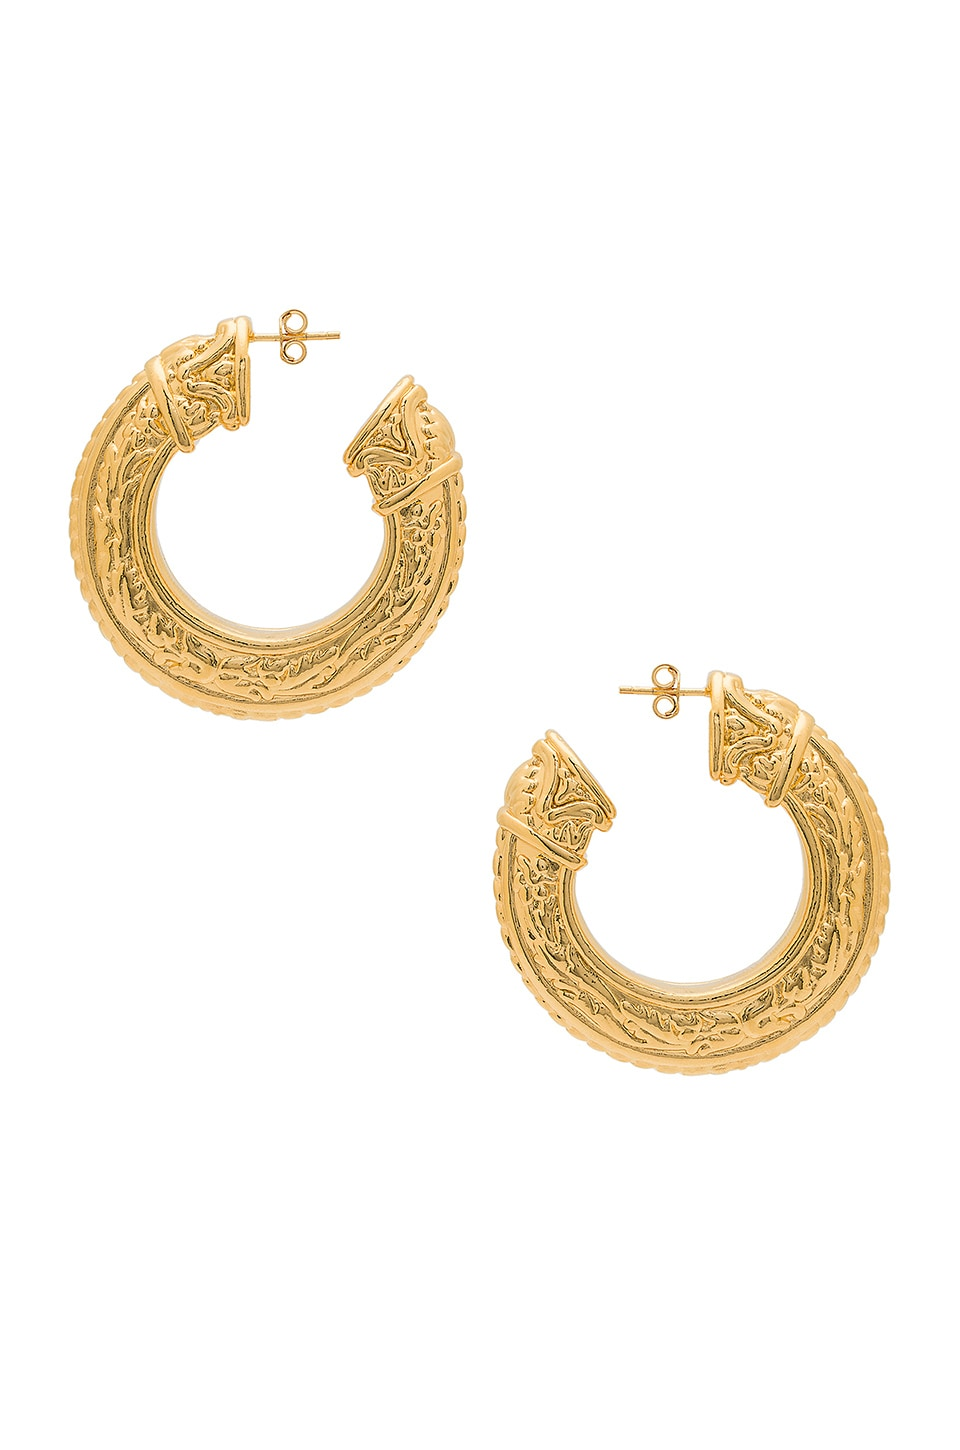 Amber Sceats Caleb Earring in Gold